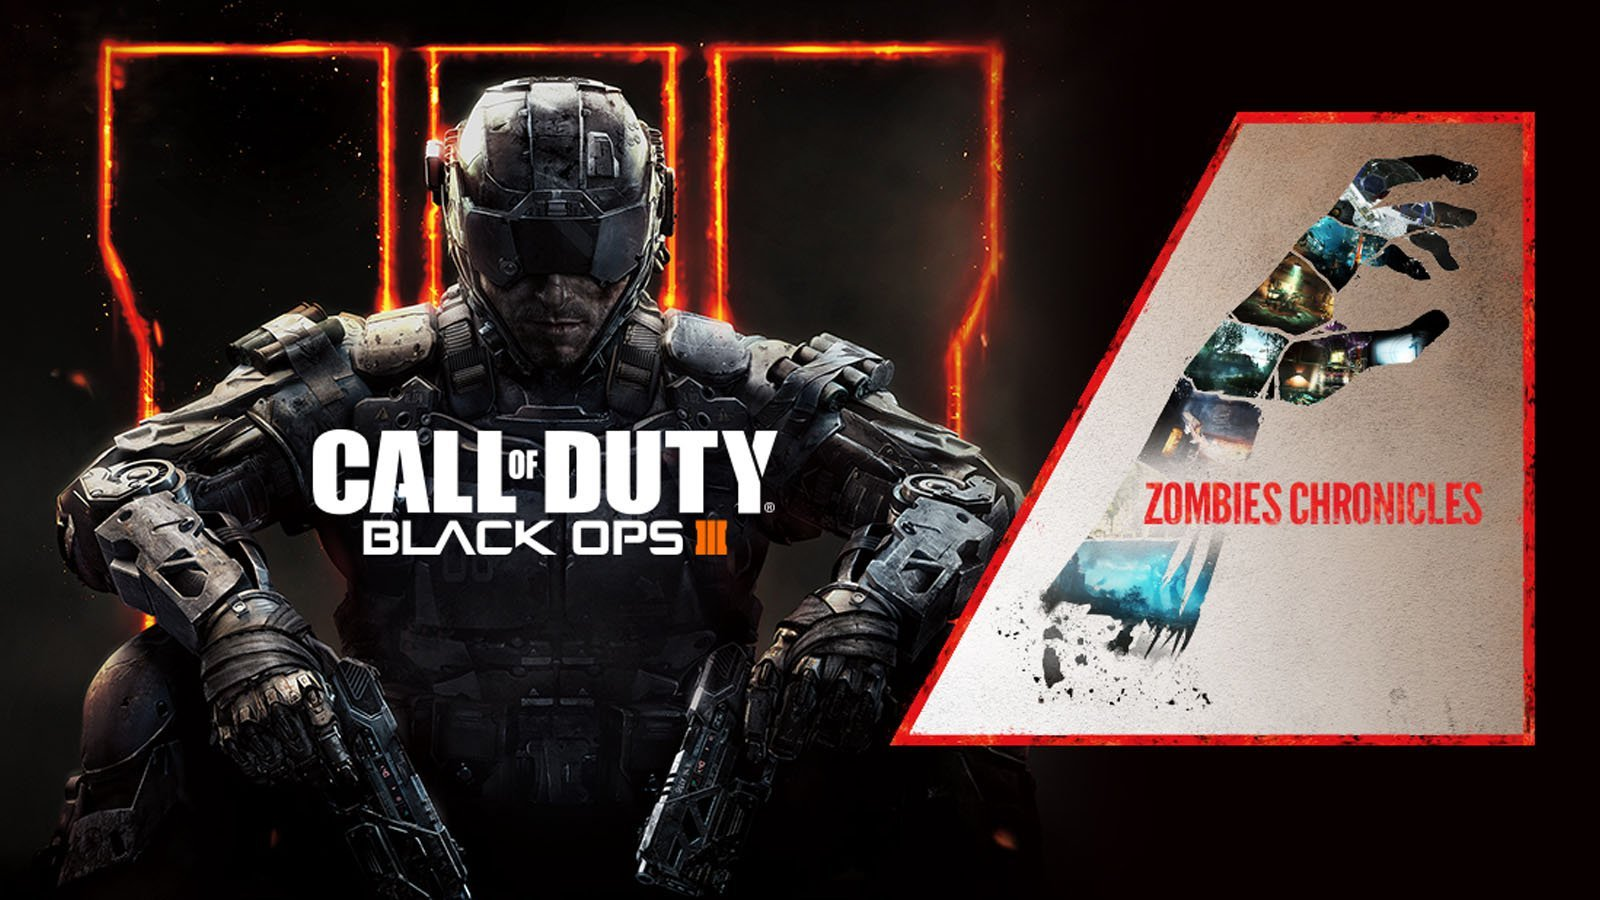 Call Of Duty Black Ops 3 Zombies Chronicles Bundle Available On